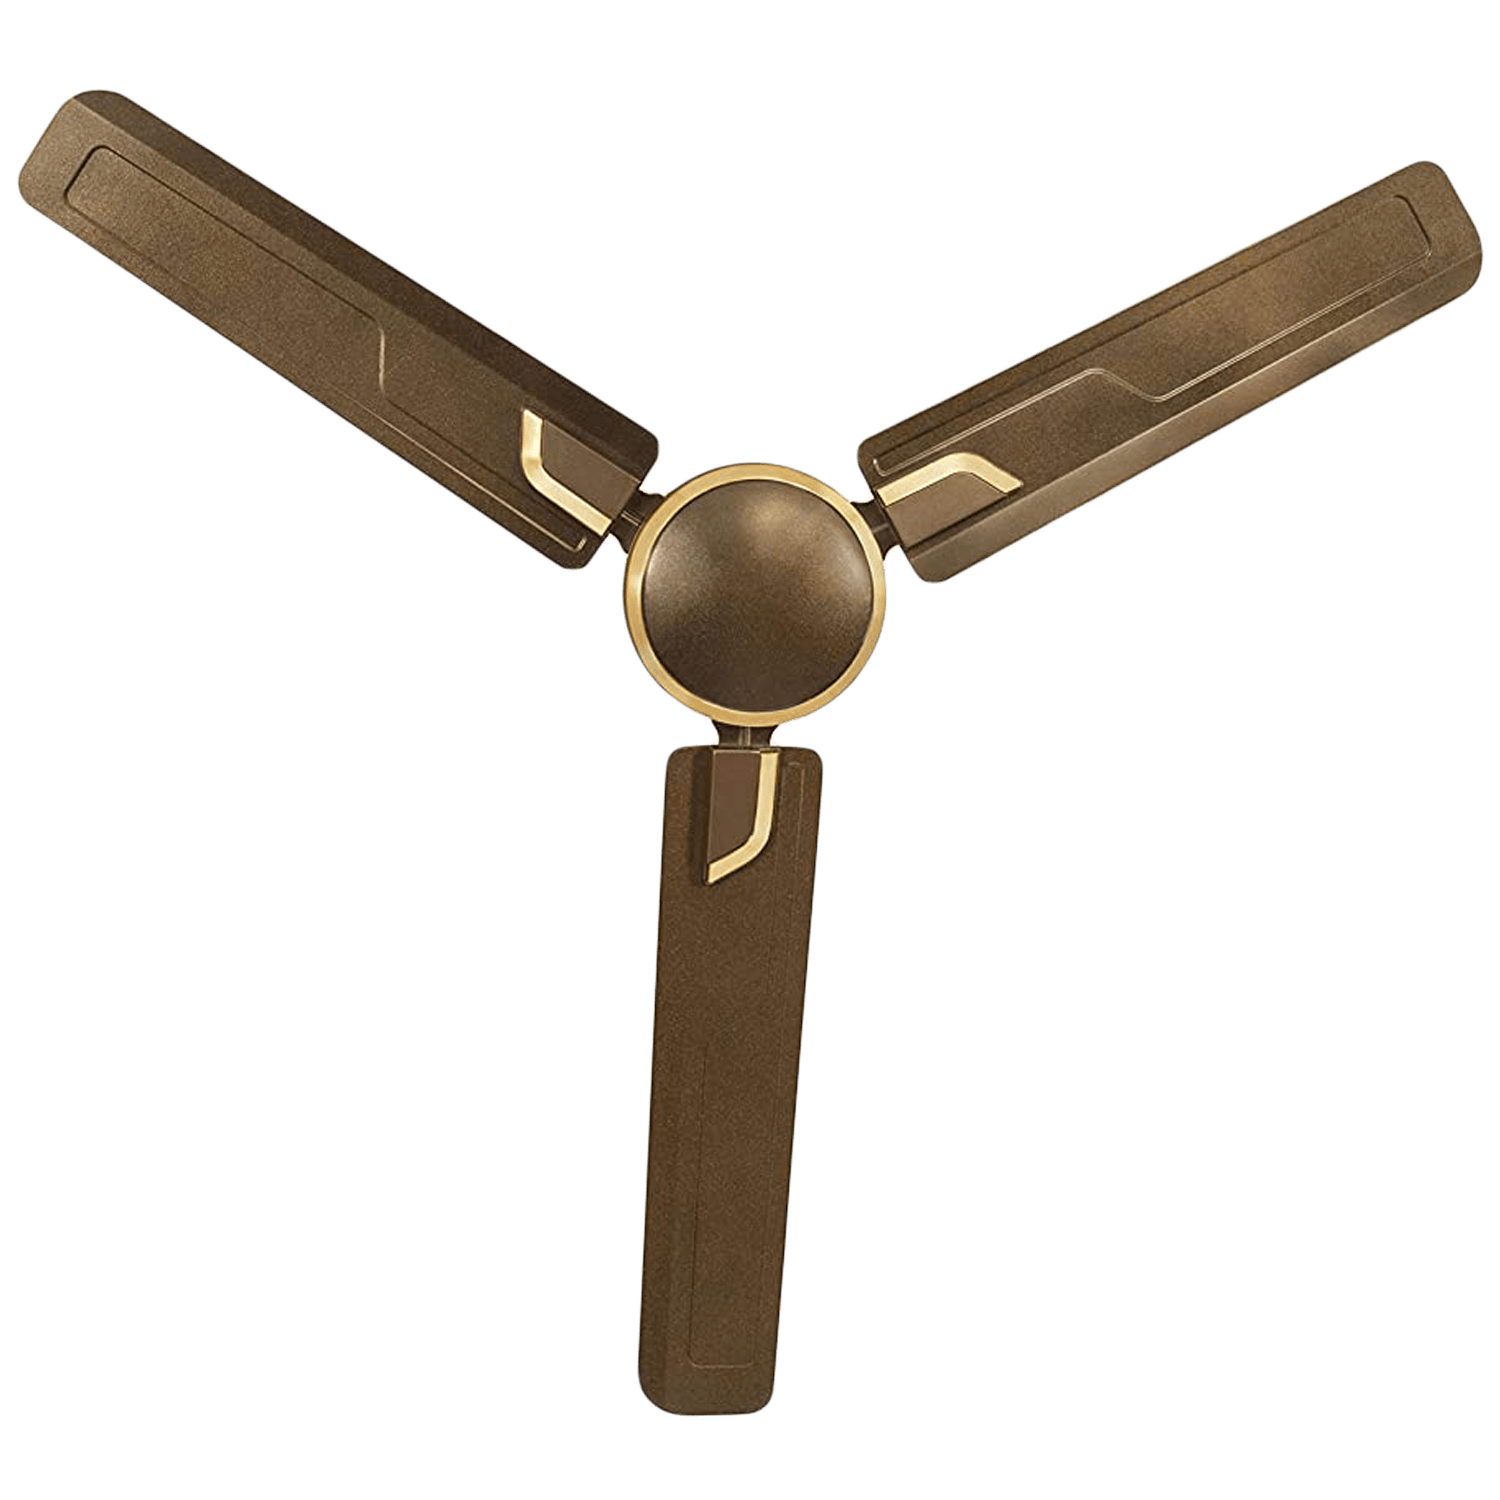 Usha Airostrong 120cm Sweep 3 Blade Ceiling Fan (Double Ball Bearing, 111045196W, Metallic Luxon Gold)